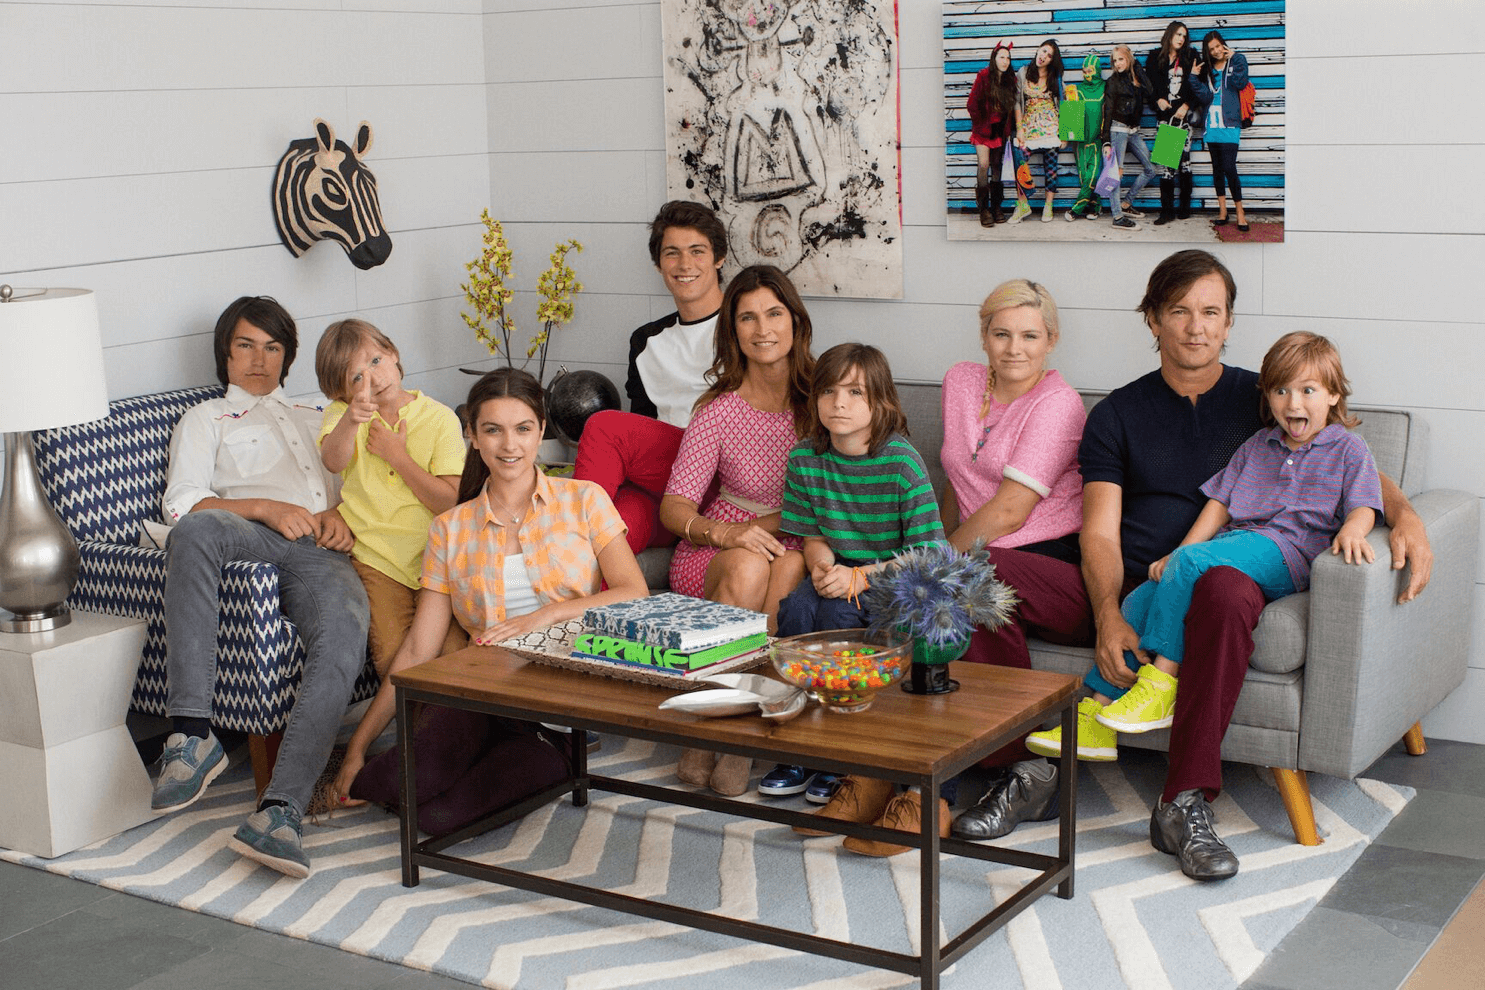 A Walmart advertisement of the Novogratz family at home styled by Sarah Parlow Fashion Stylist.